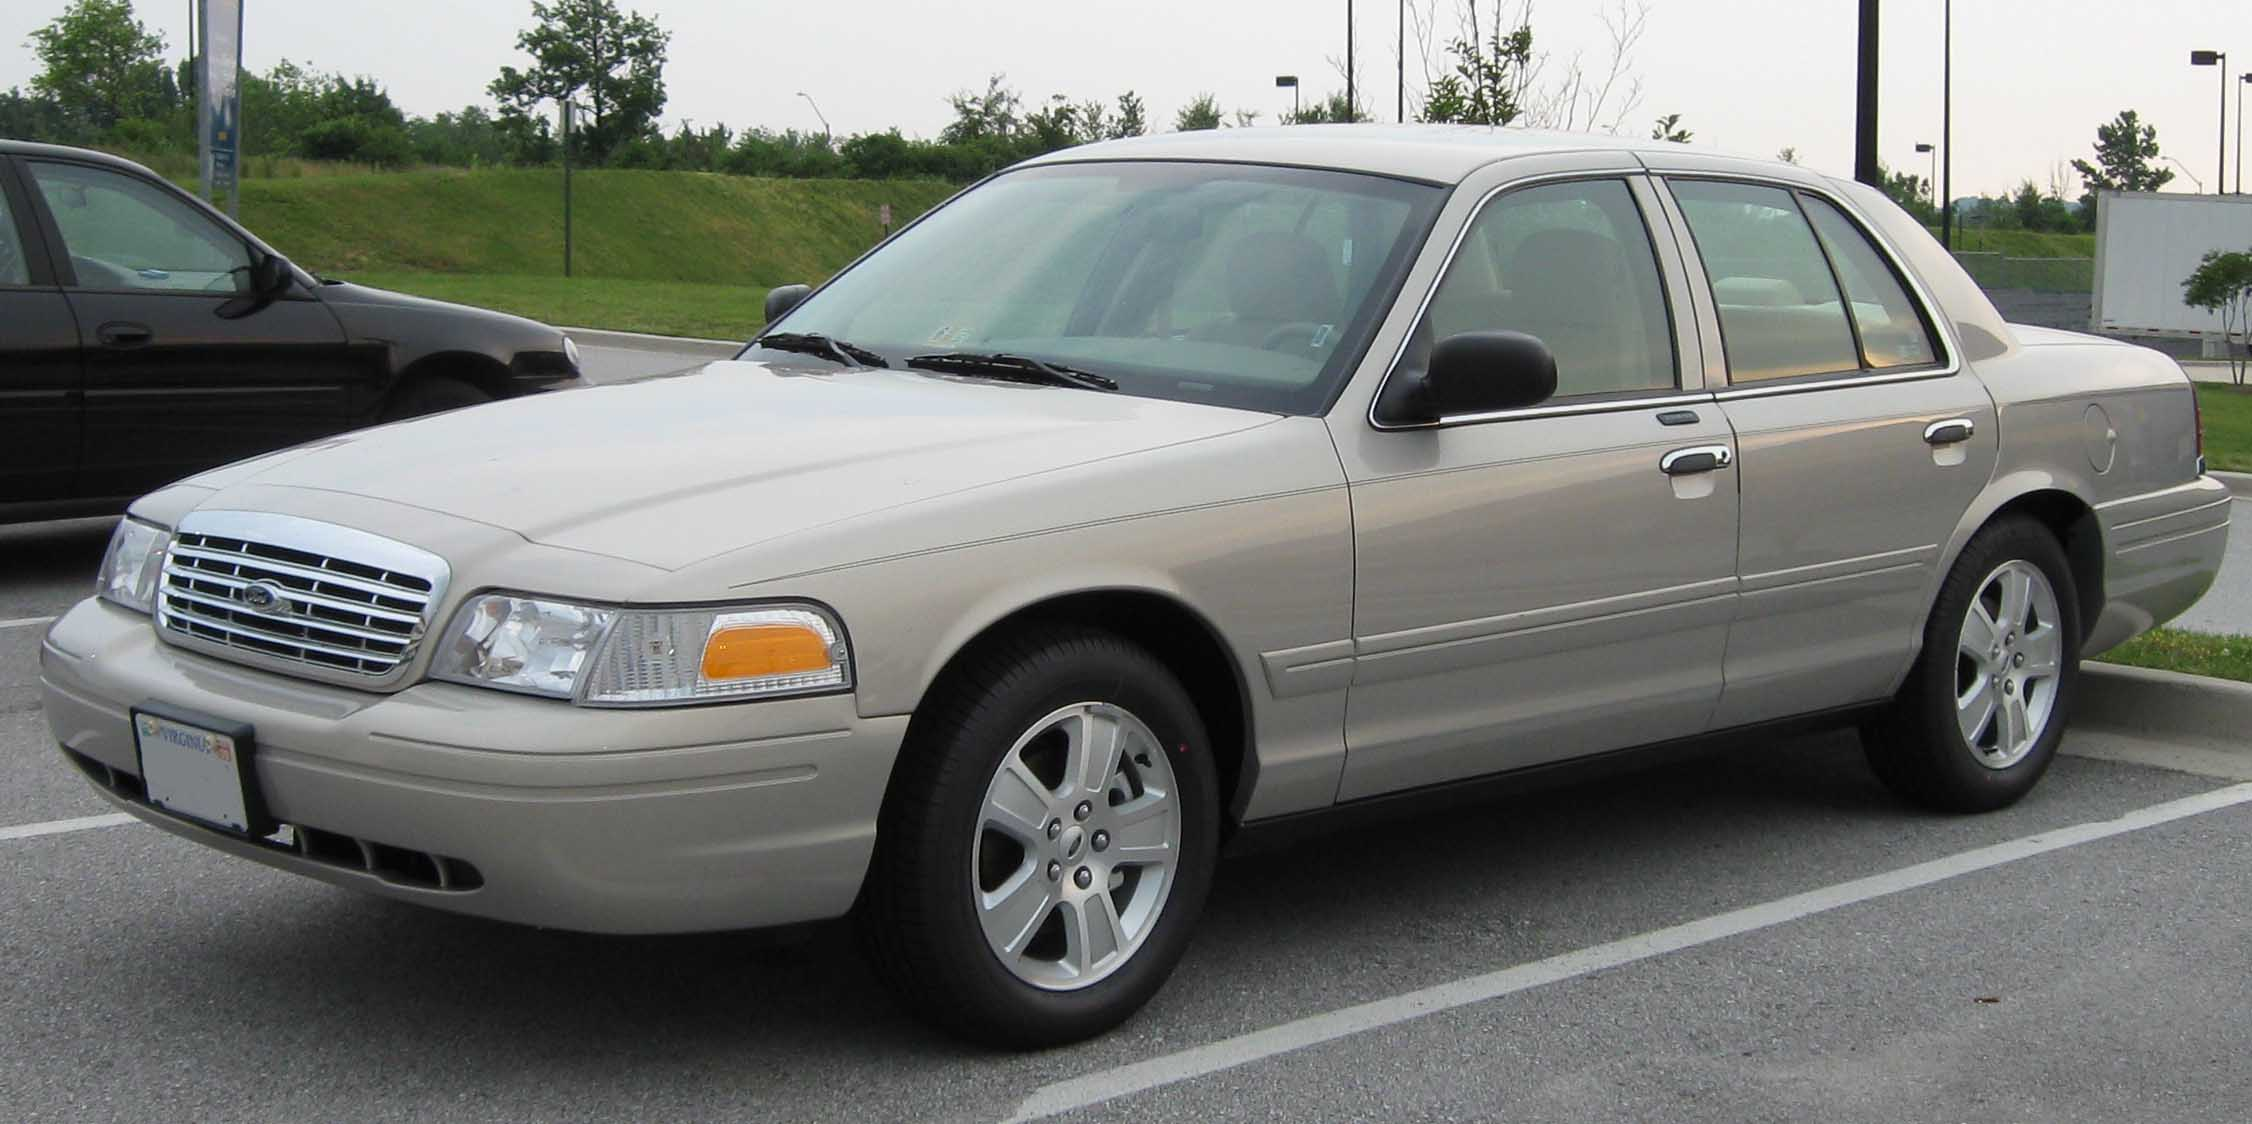 2001 ford crown victoria size 170 kb resolution 2252x1124 type link file src